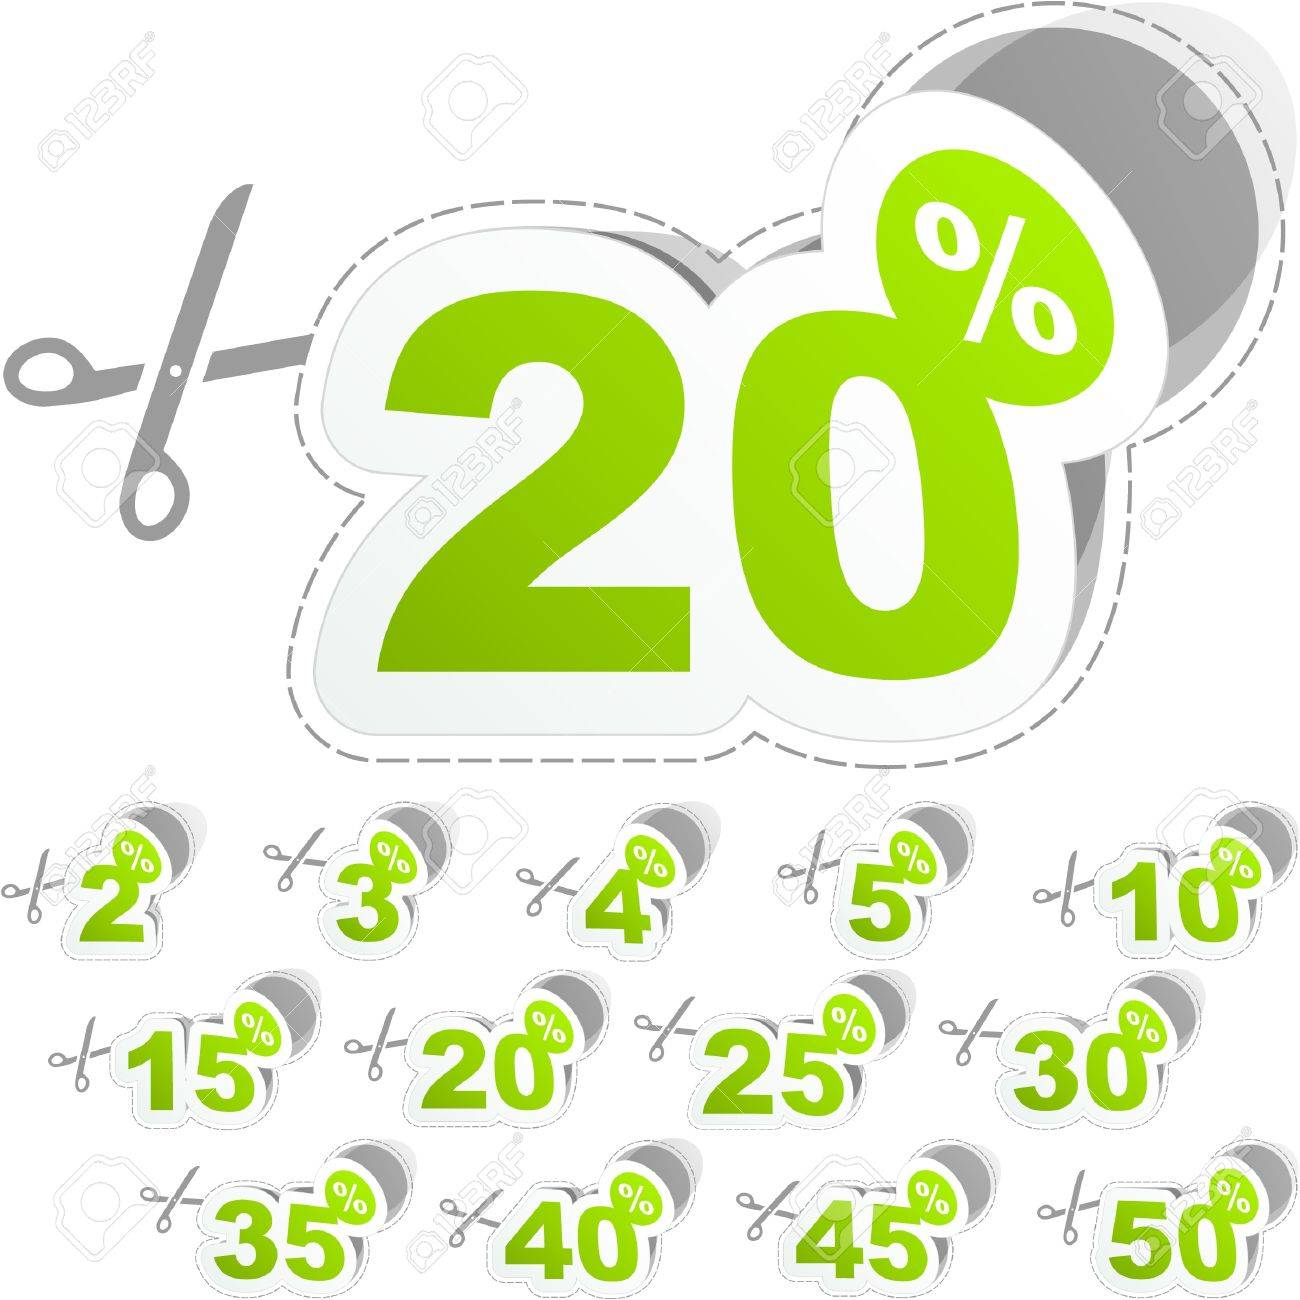 Discount sticker templates with different percentages Stock Vector - 9039230